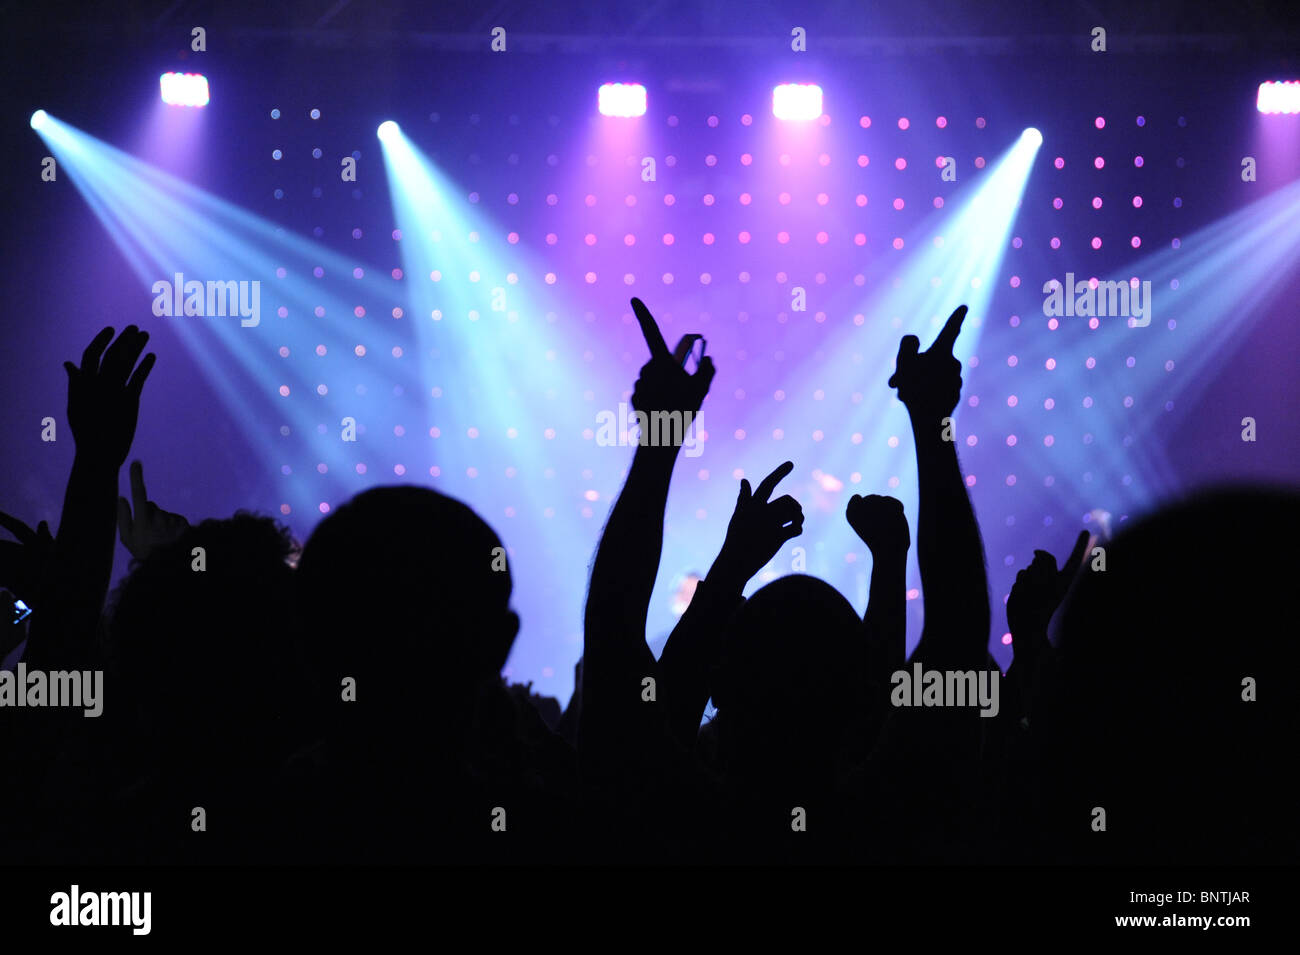 People at a concert silhouetted by the lights - Stock Image